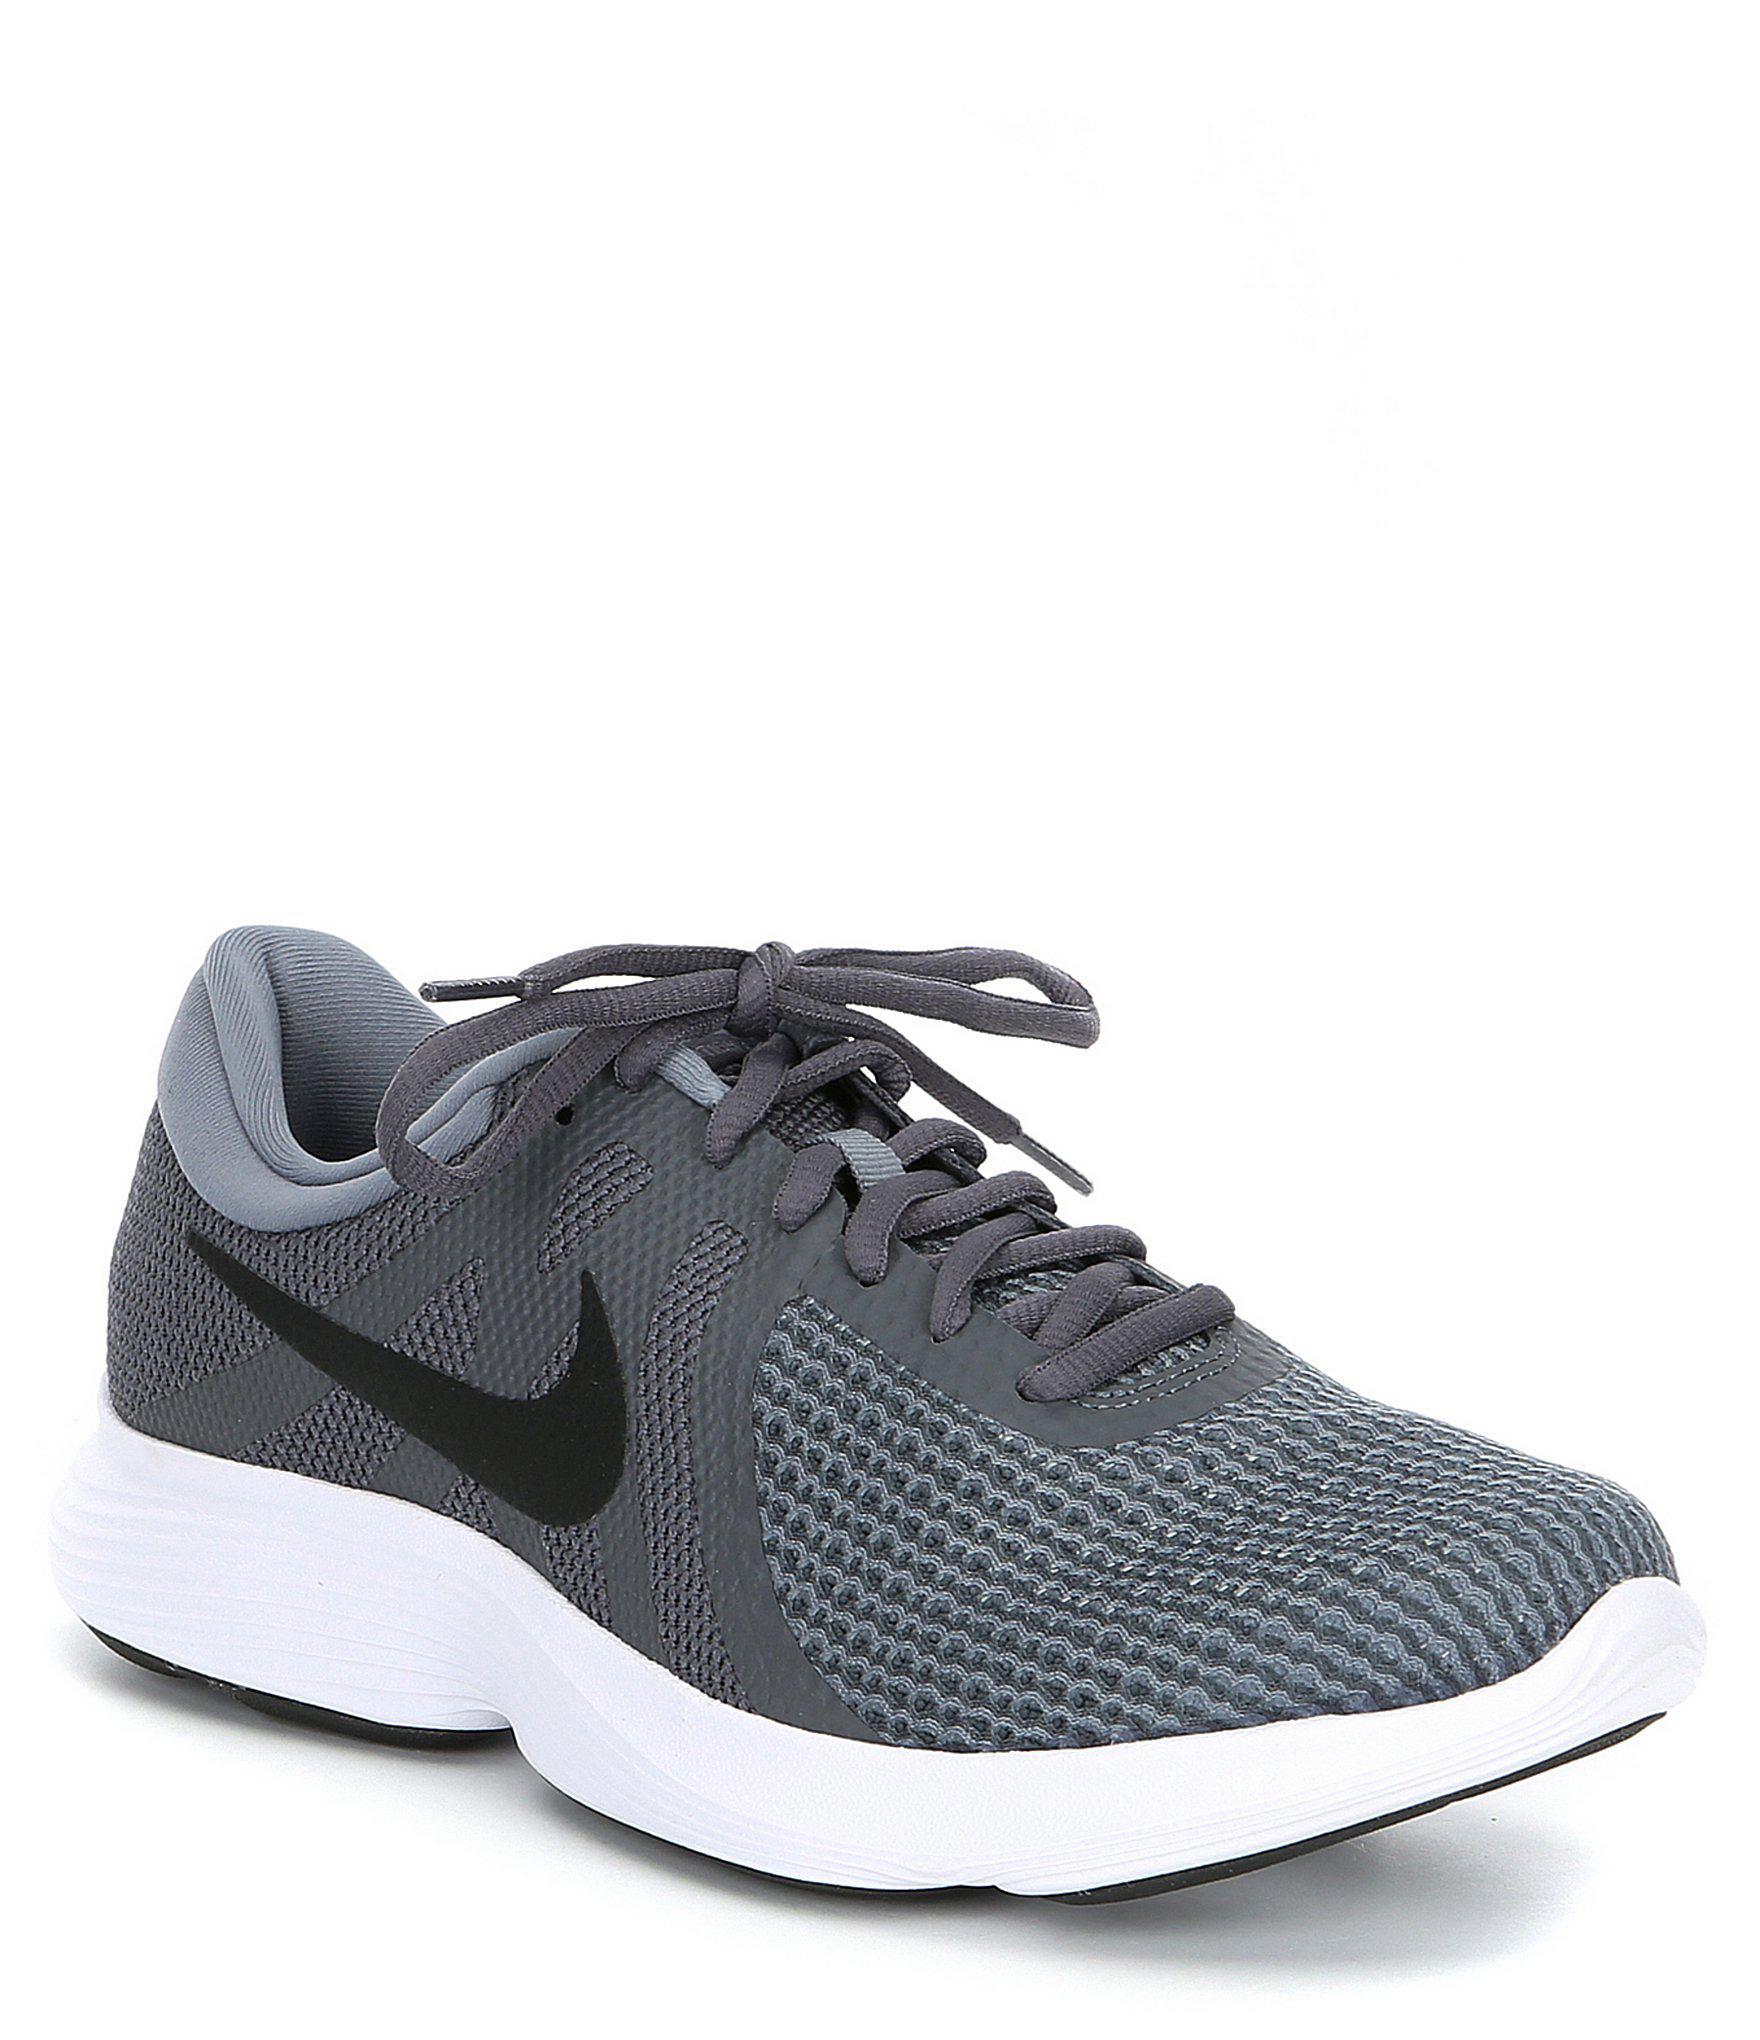 c45911222e4b1 Lyst - Nike Men s Revolution 4 Running Shoe in Gray for Men